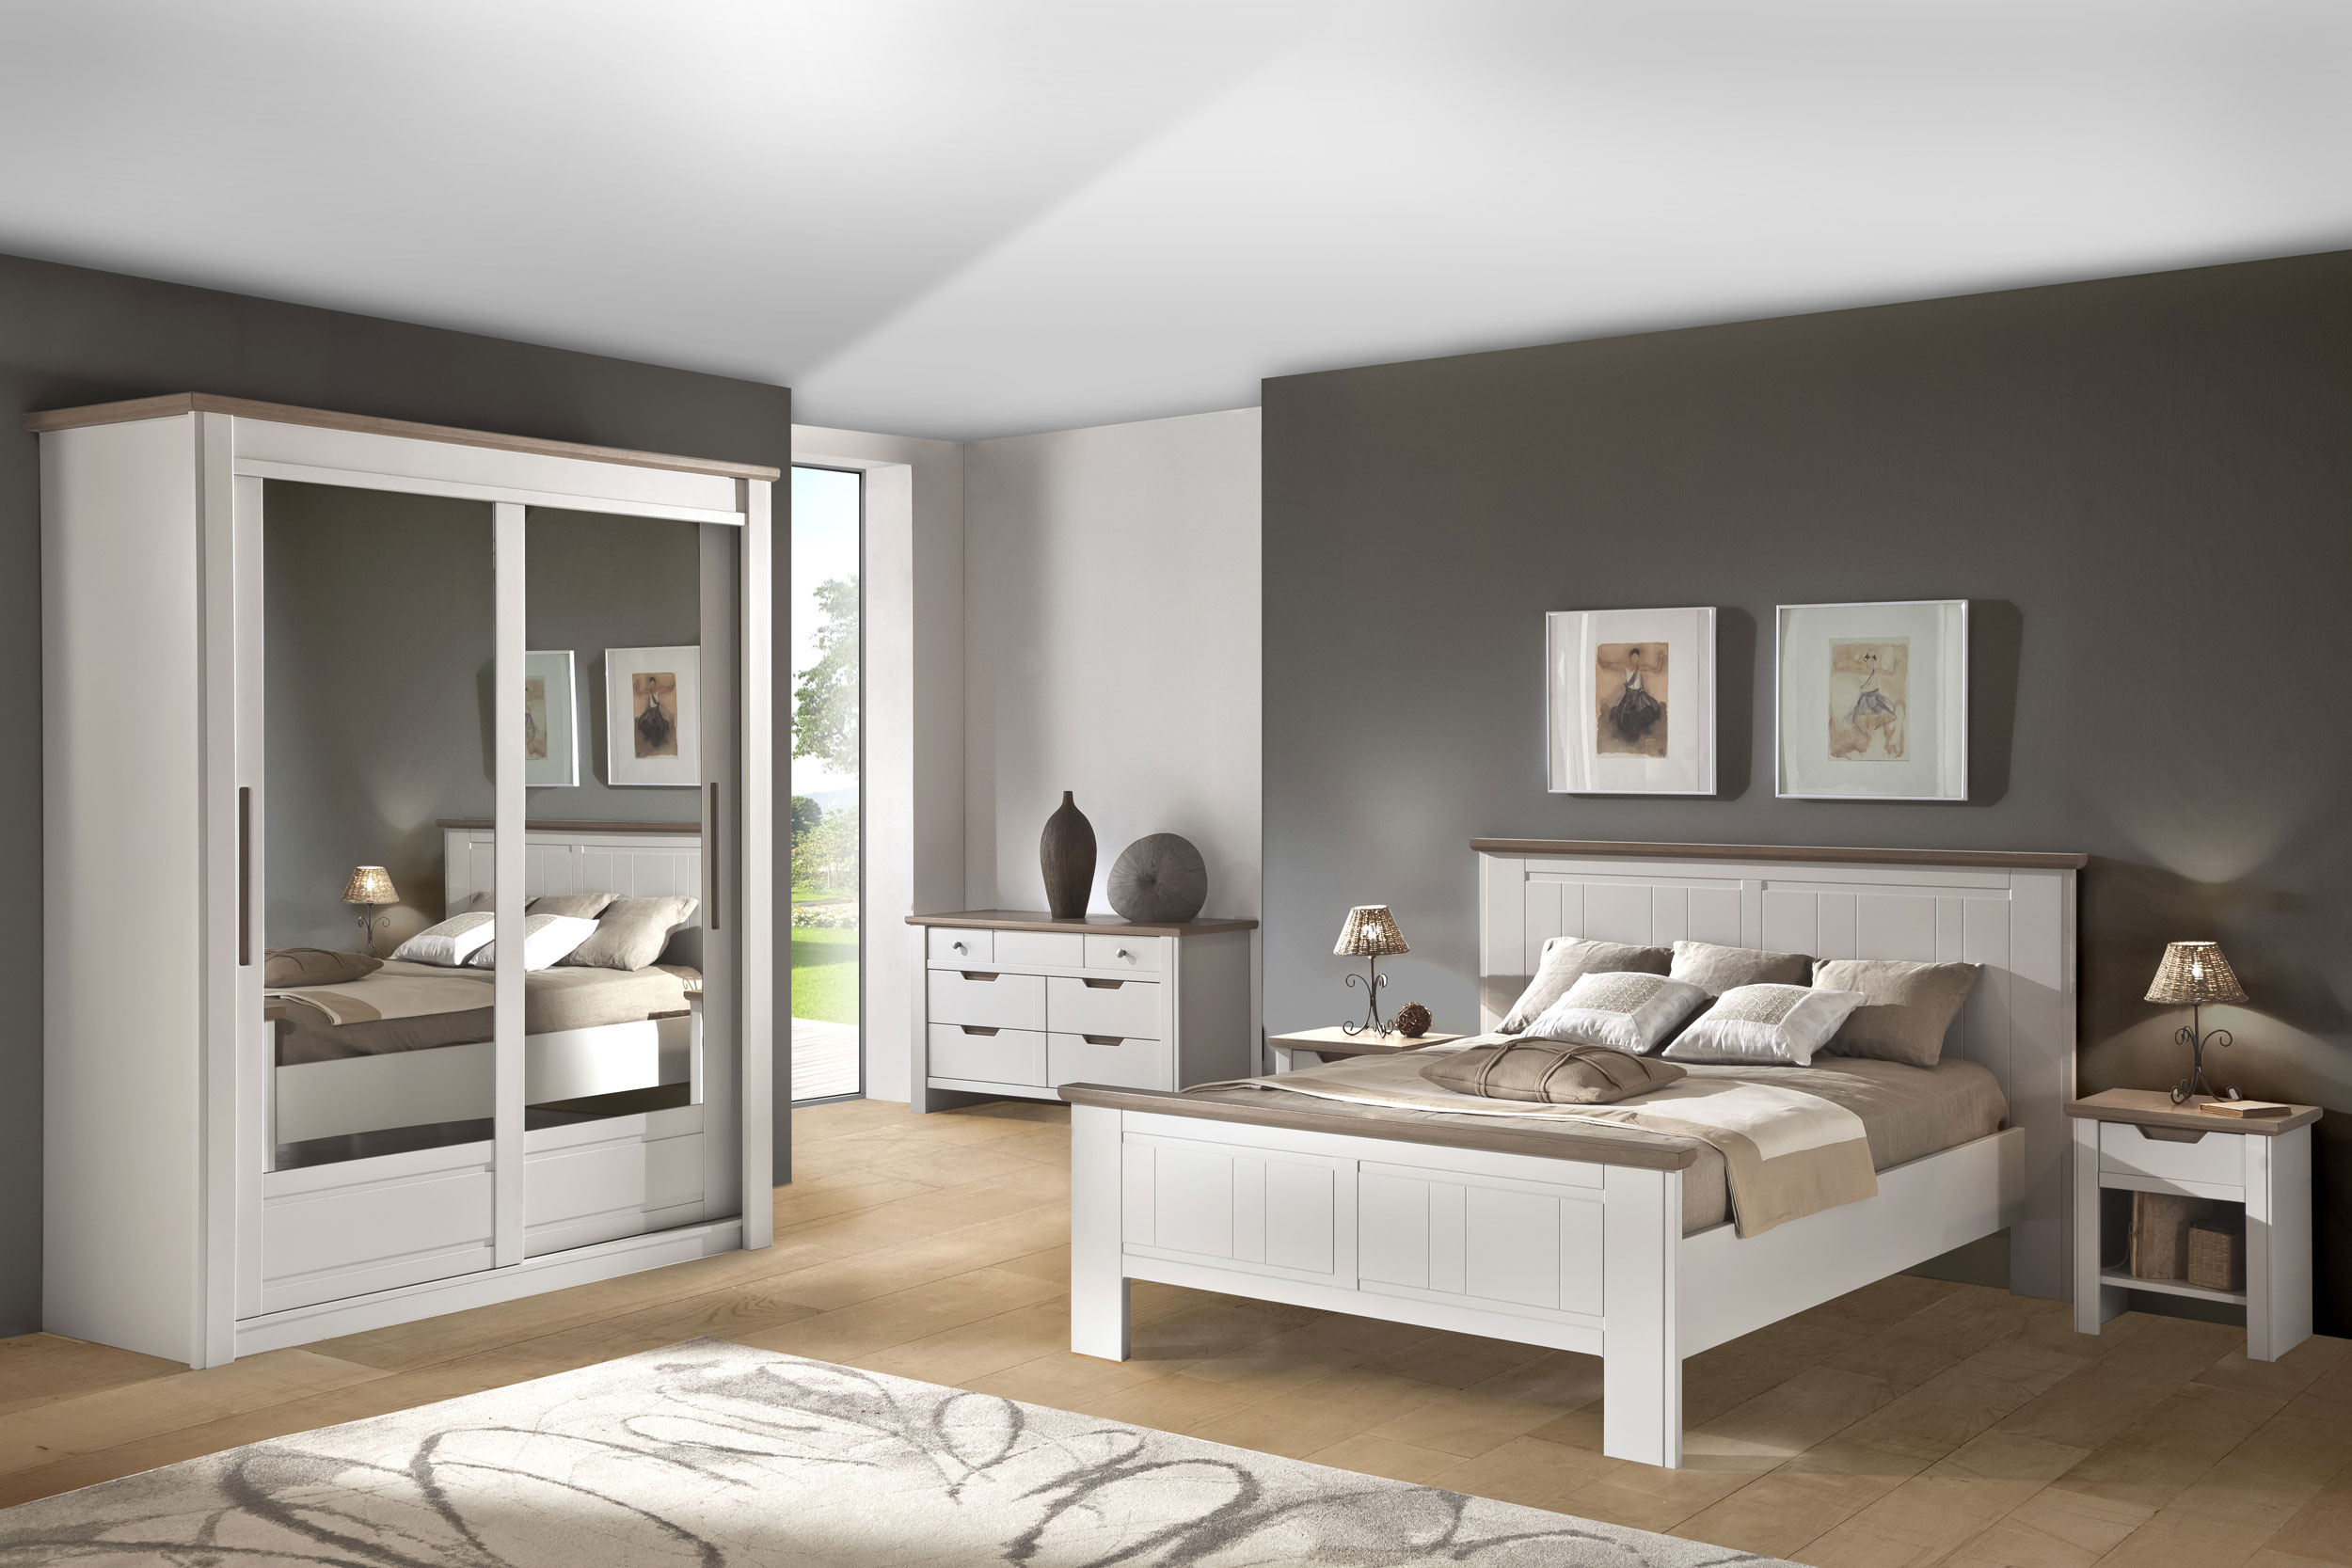 d coration chambre meuble. Black Bedroom Furniture Sets. Home Design Ideas